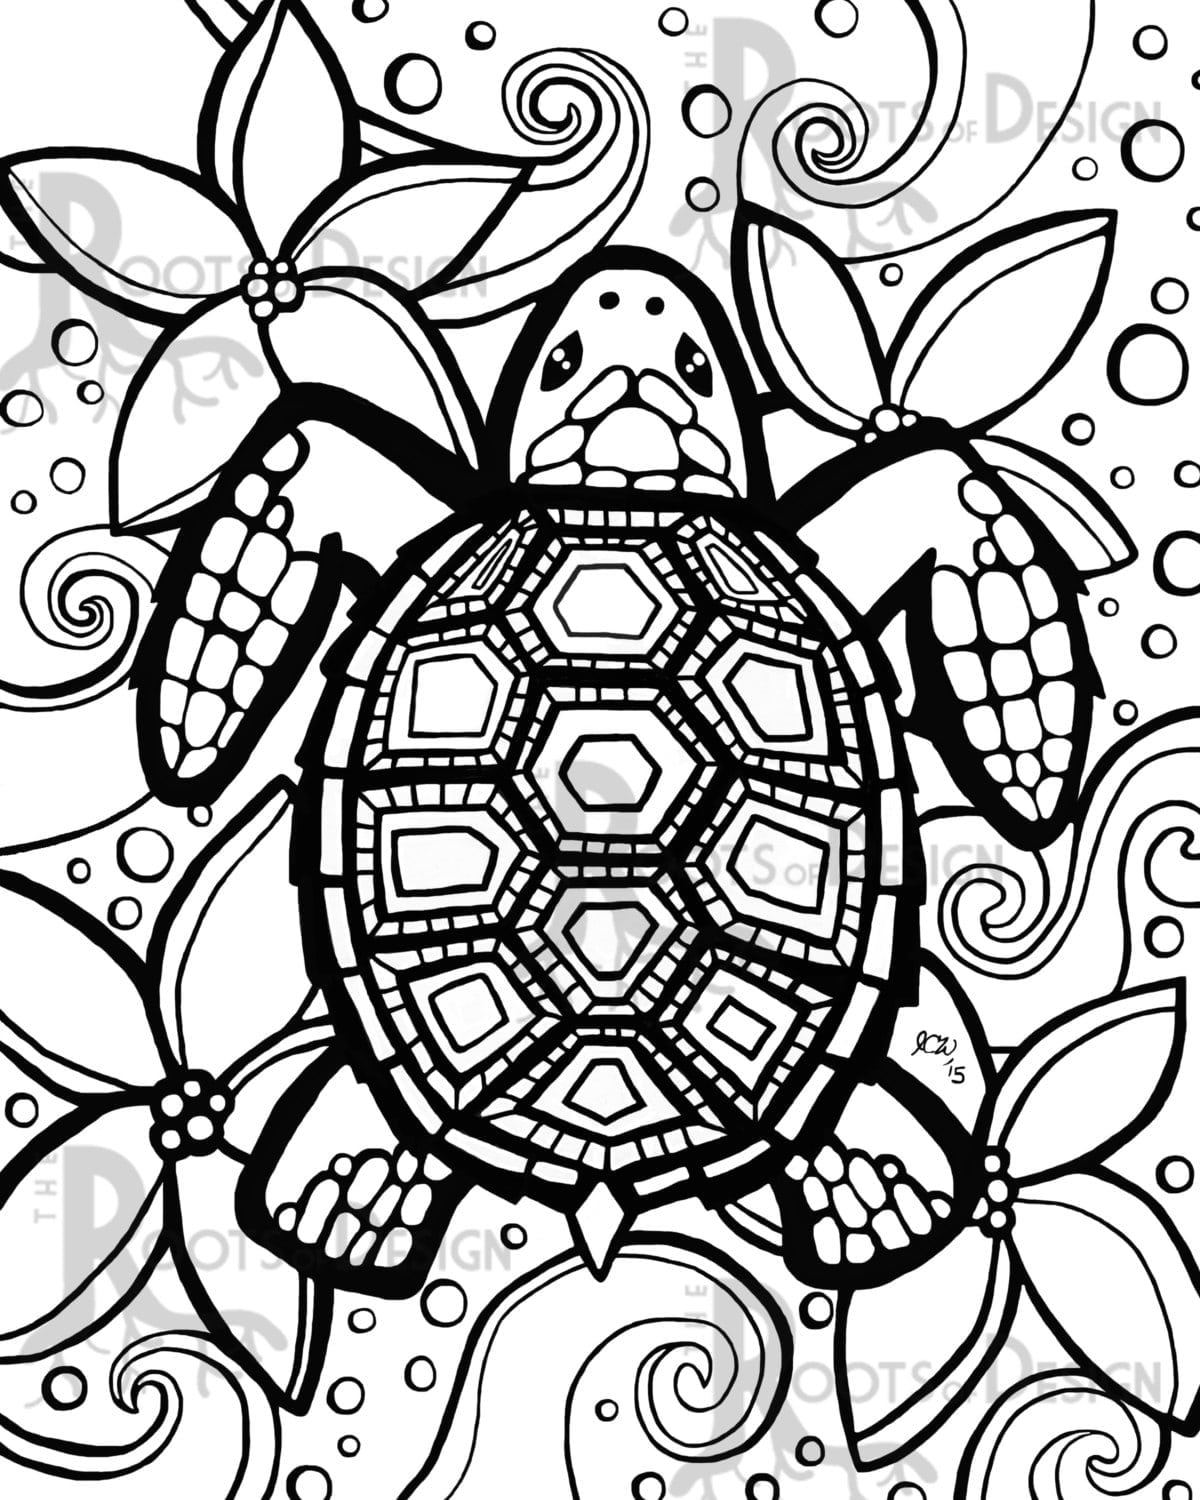 Innovation Sea Turtle Coloring Pages Adult Baby Printable Of A